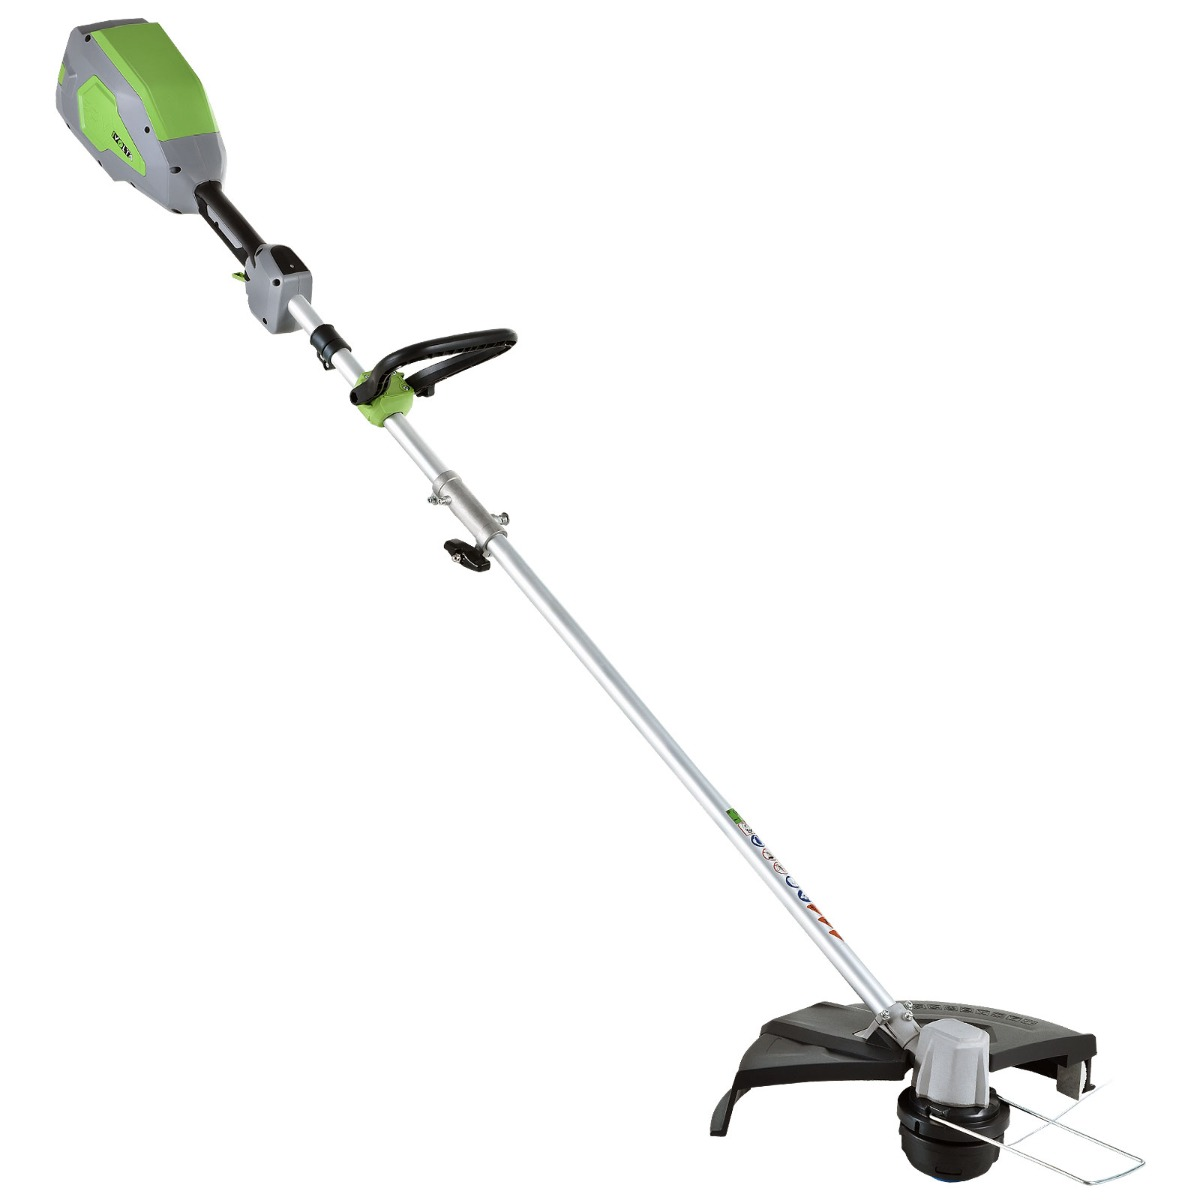 Neovolta 60V Grass Trimmer Bare Unit Cordless Lithium Lawn Edge Light Weight